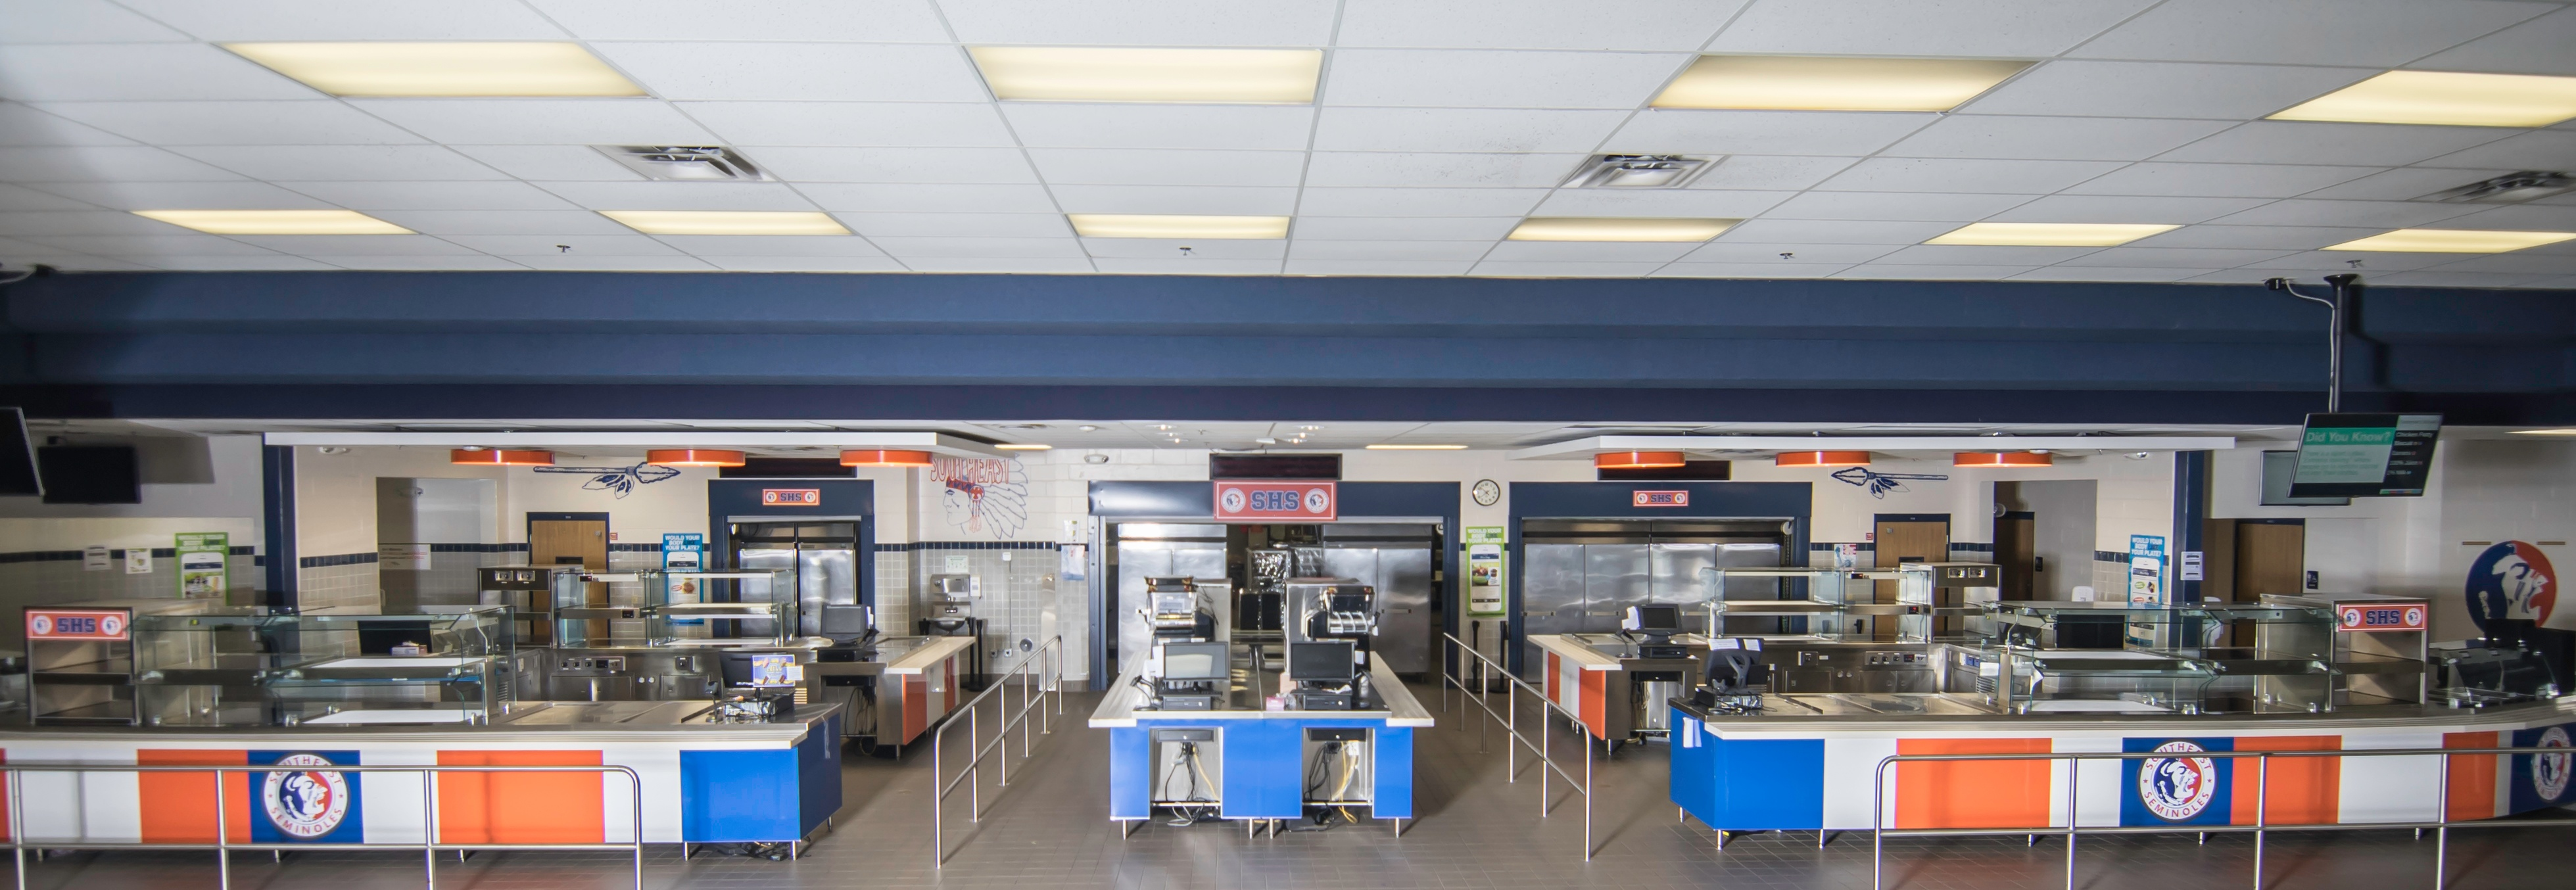 Case Study: Increasing Participation in a Florida School Cafeteria by 25 Percent